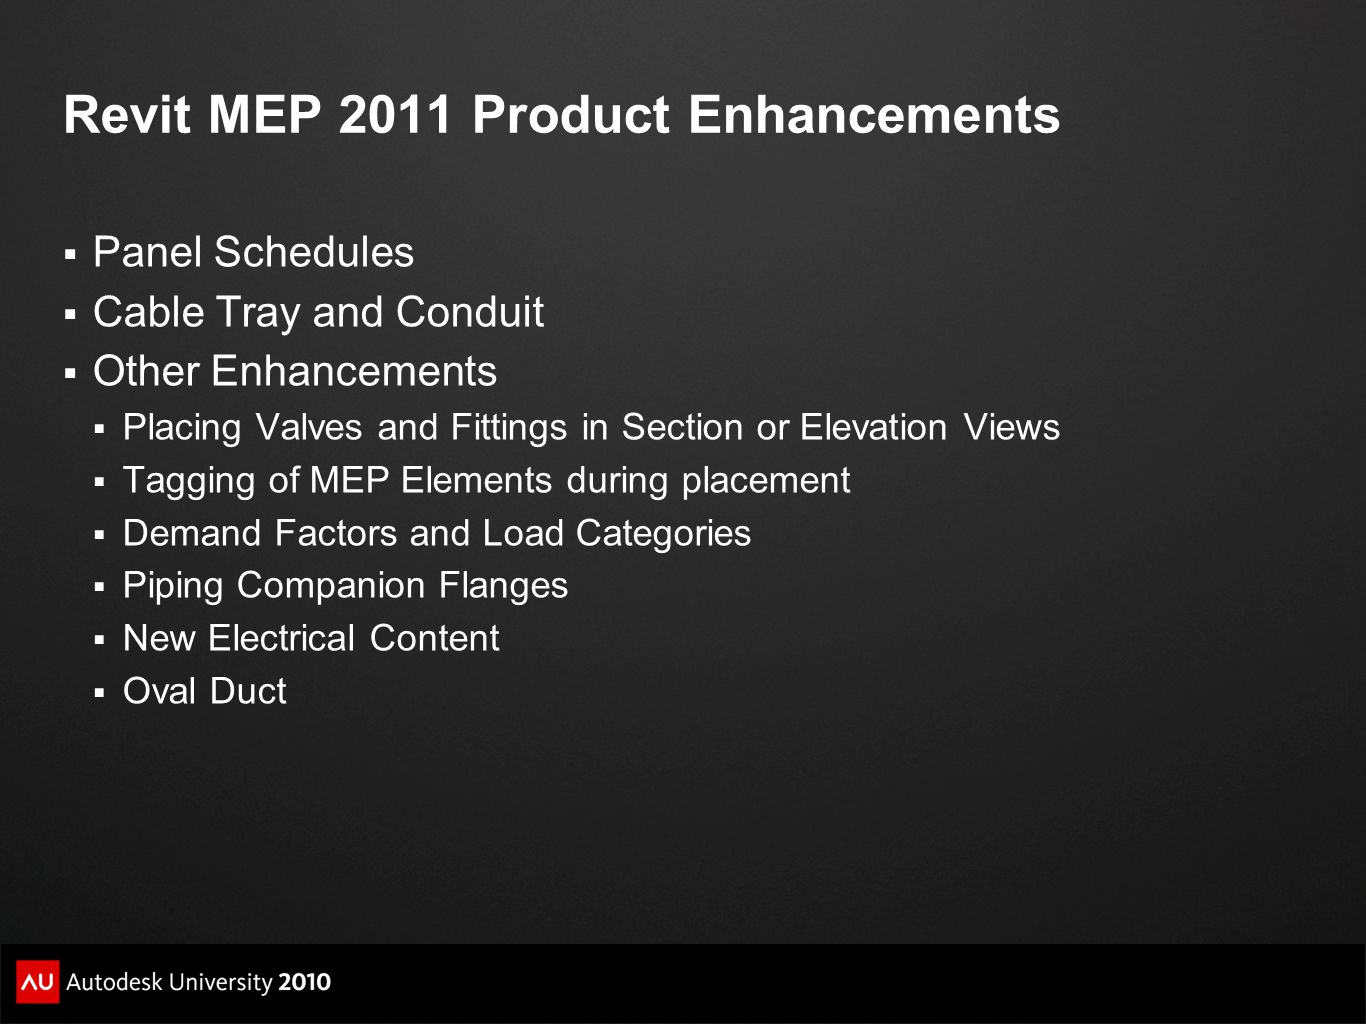 Revit MEP 2011 Product Enhancements  Panel Schedules  Cable Tray and Conduit  Other Enhancements  Placing Valves and Fittings in Section or Elevation Views  Tagging of MEP Elements during placement  Demand Factors and Load Categories  Piping Companion Flanges  New Electrical Content  Oval Duct